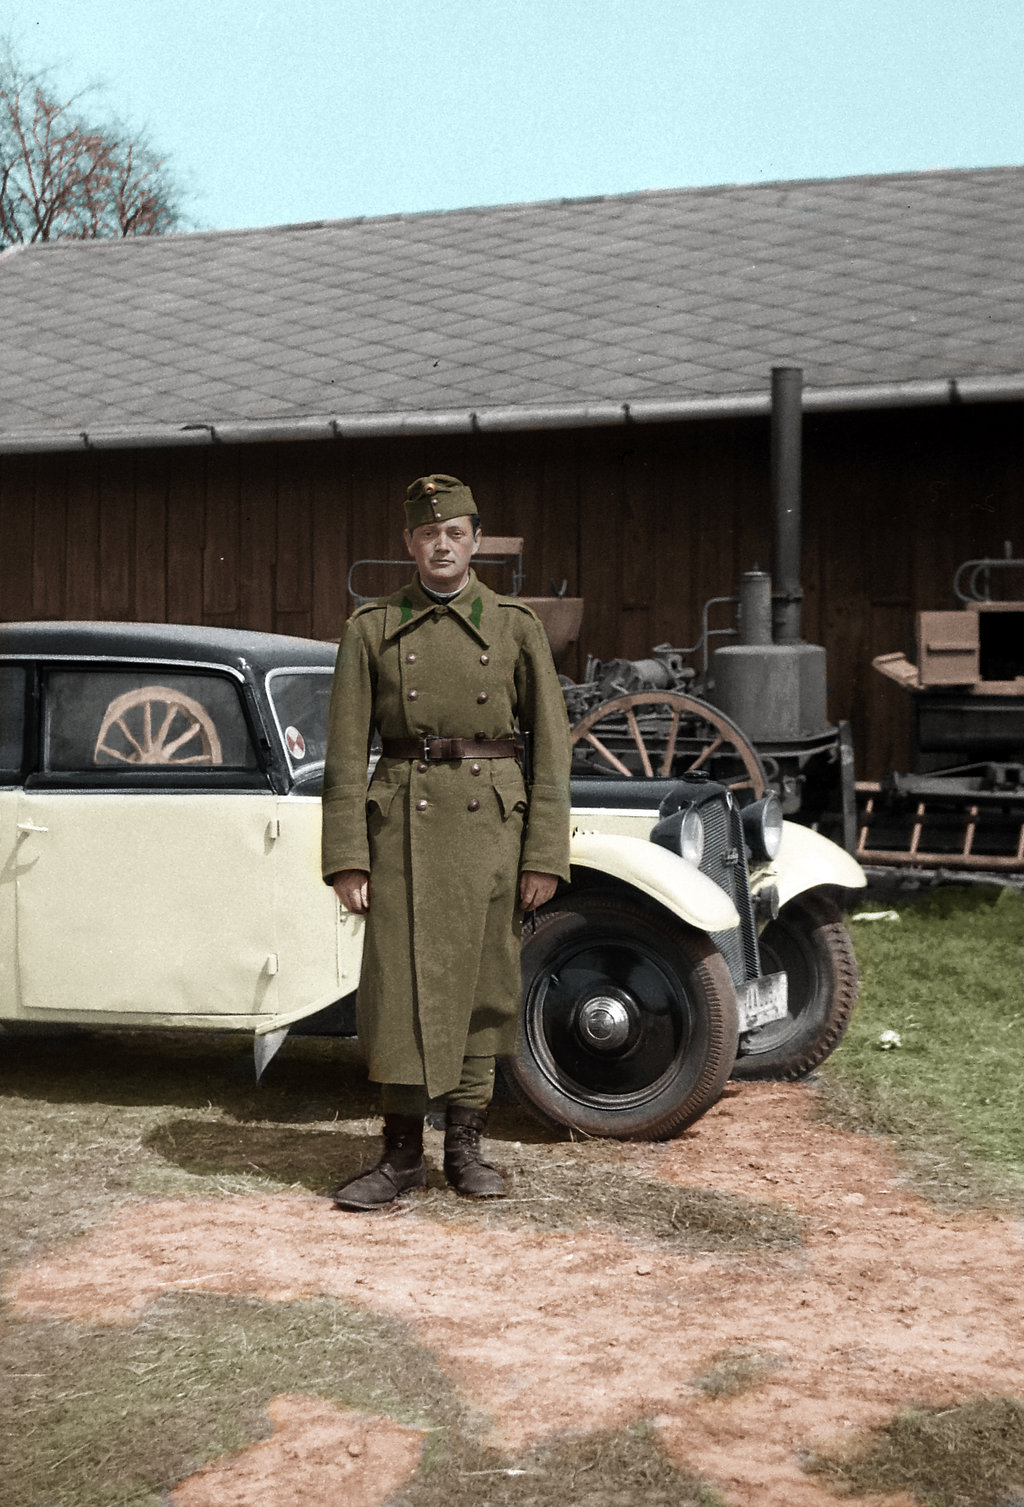 soldier_with_a_car_by_greenh0rn-d6ynvef.jpg